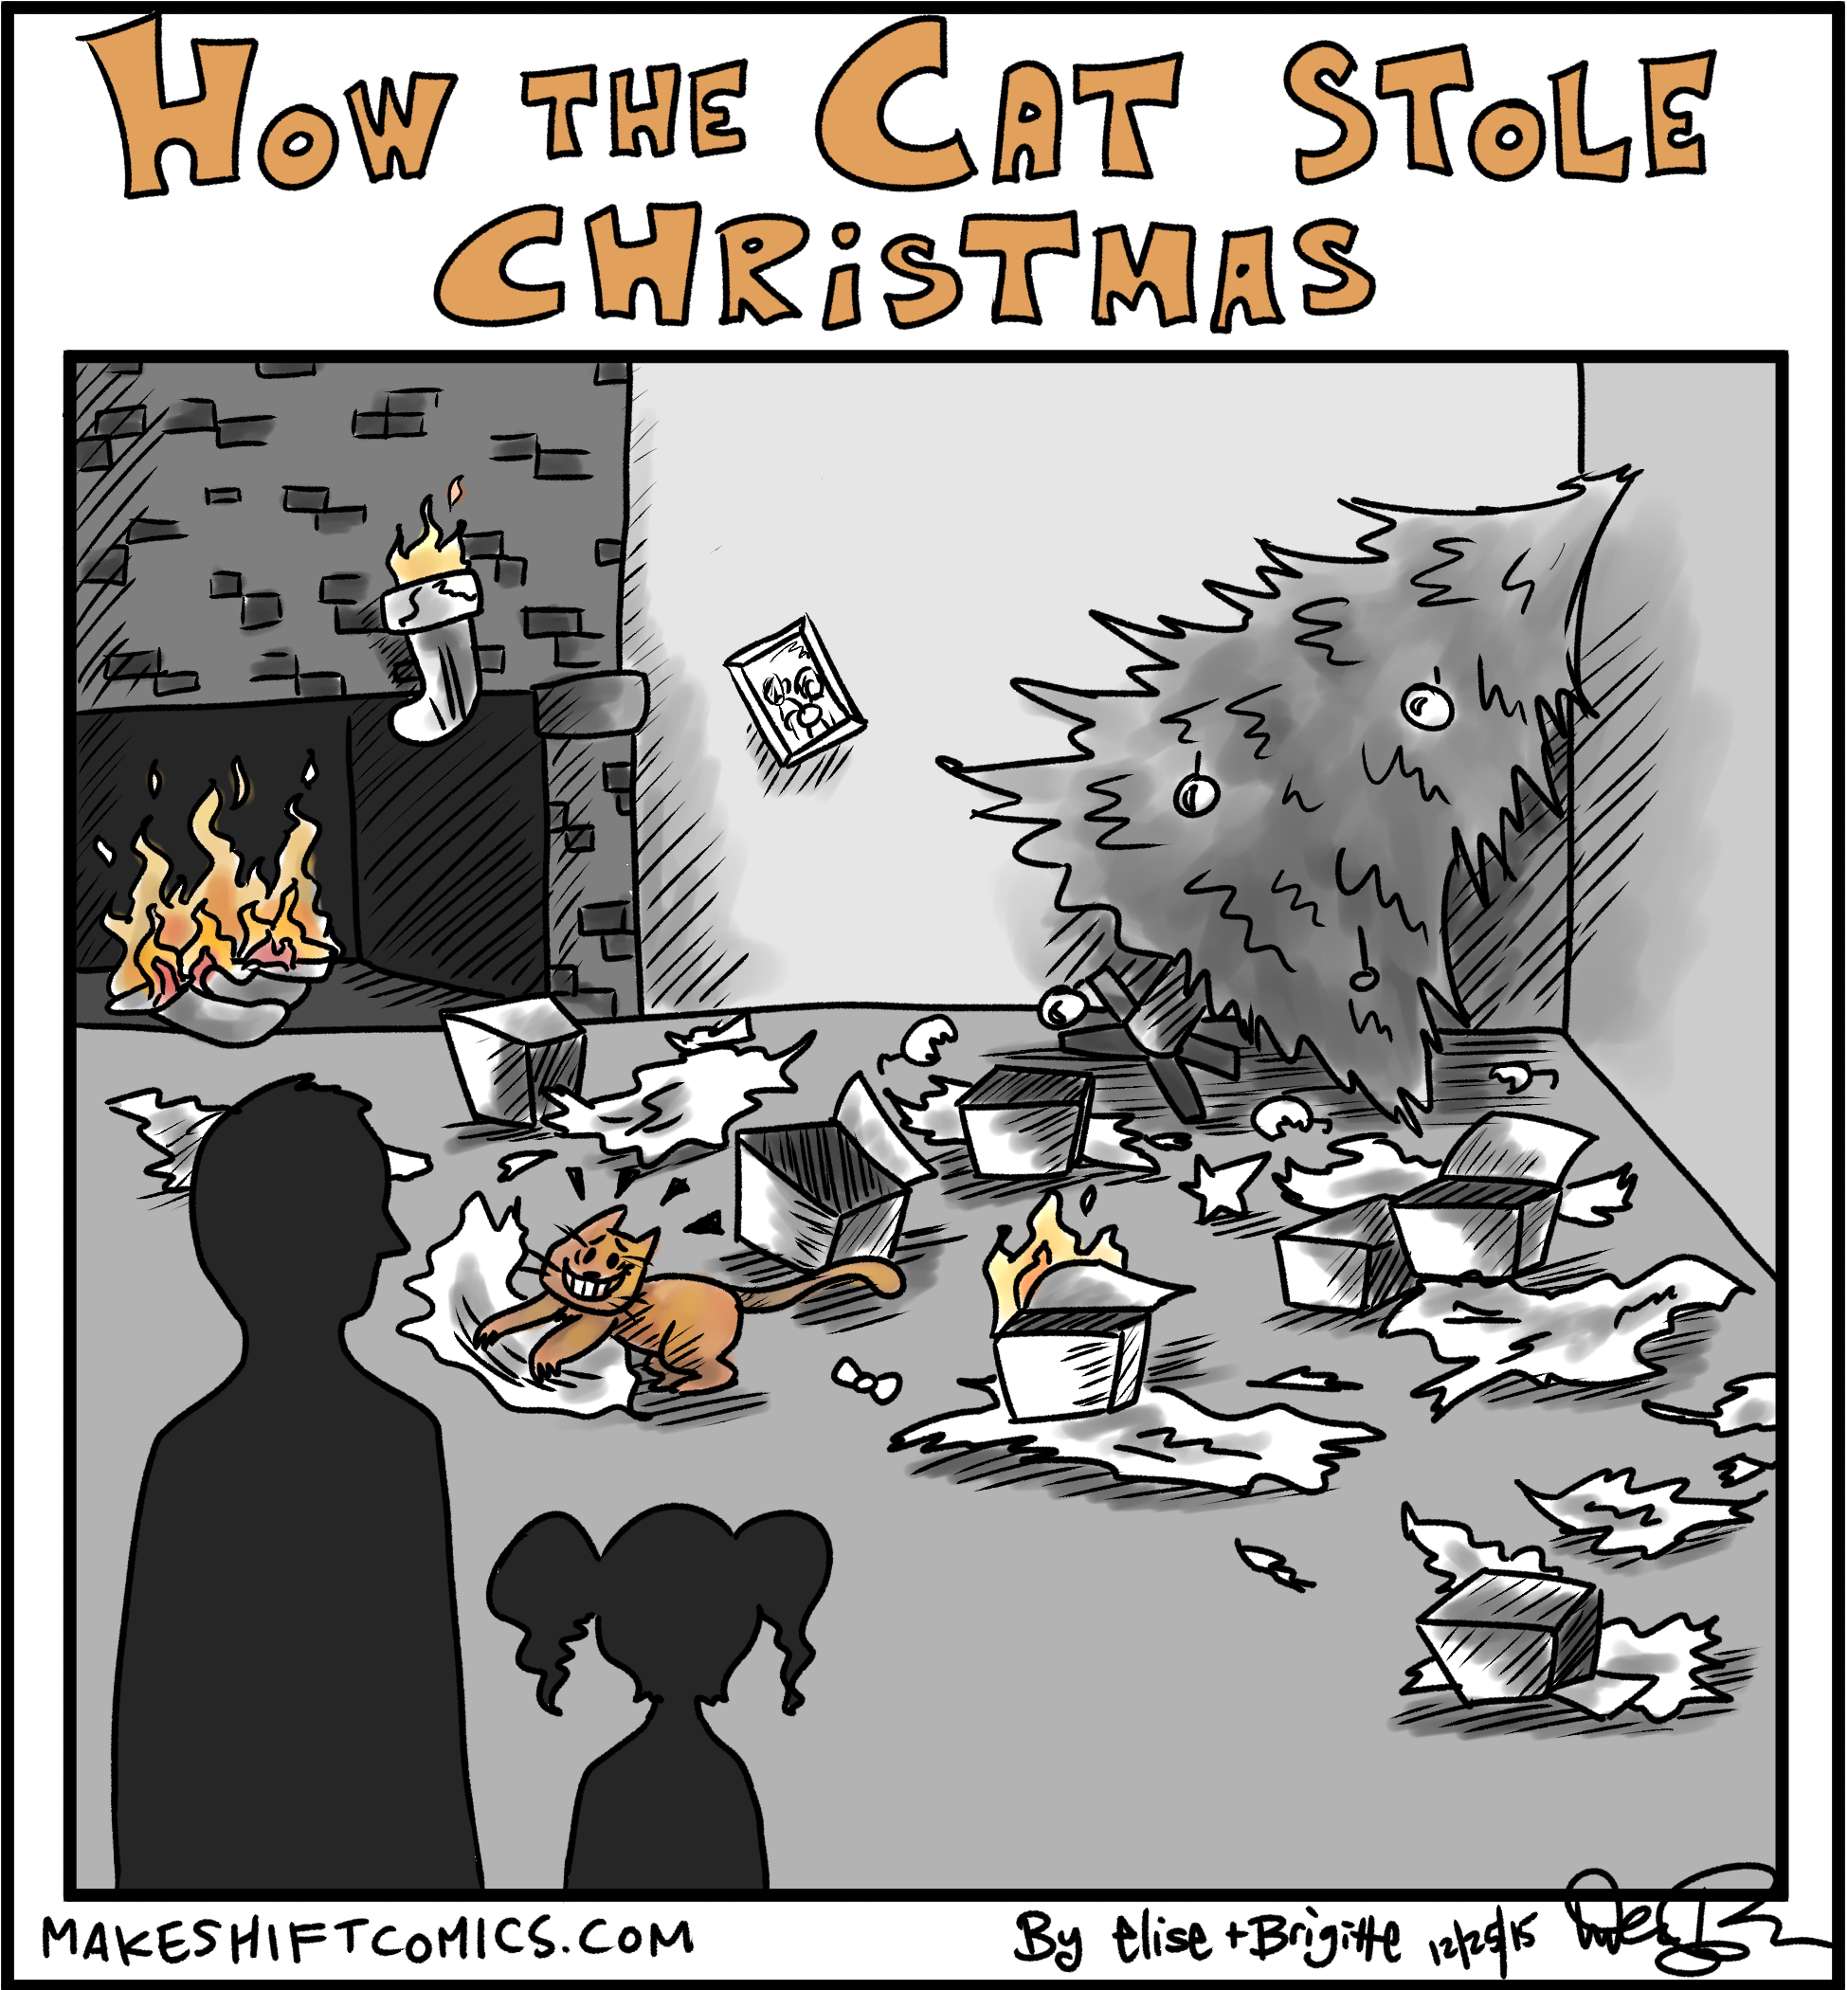 How the Cat Stole Christmas